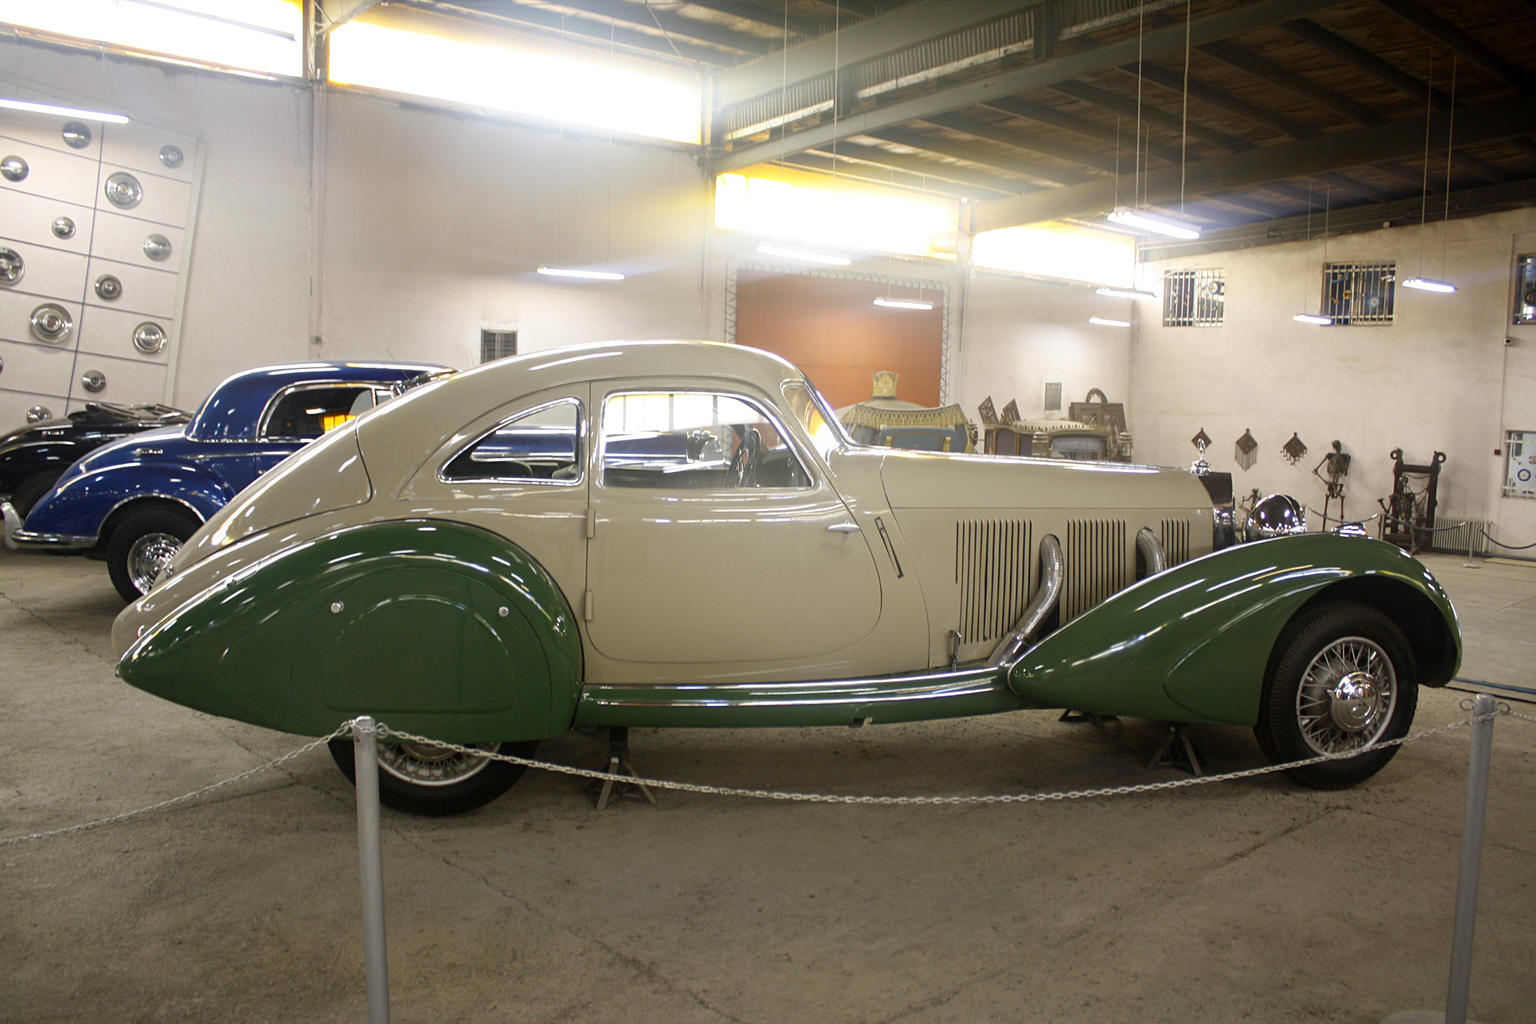 Automobile Museum Tehran, Pin by Tim Buttrum on THE SHAH OF IRAN'S CARS HE LEFT BEHIND ...